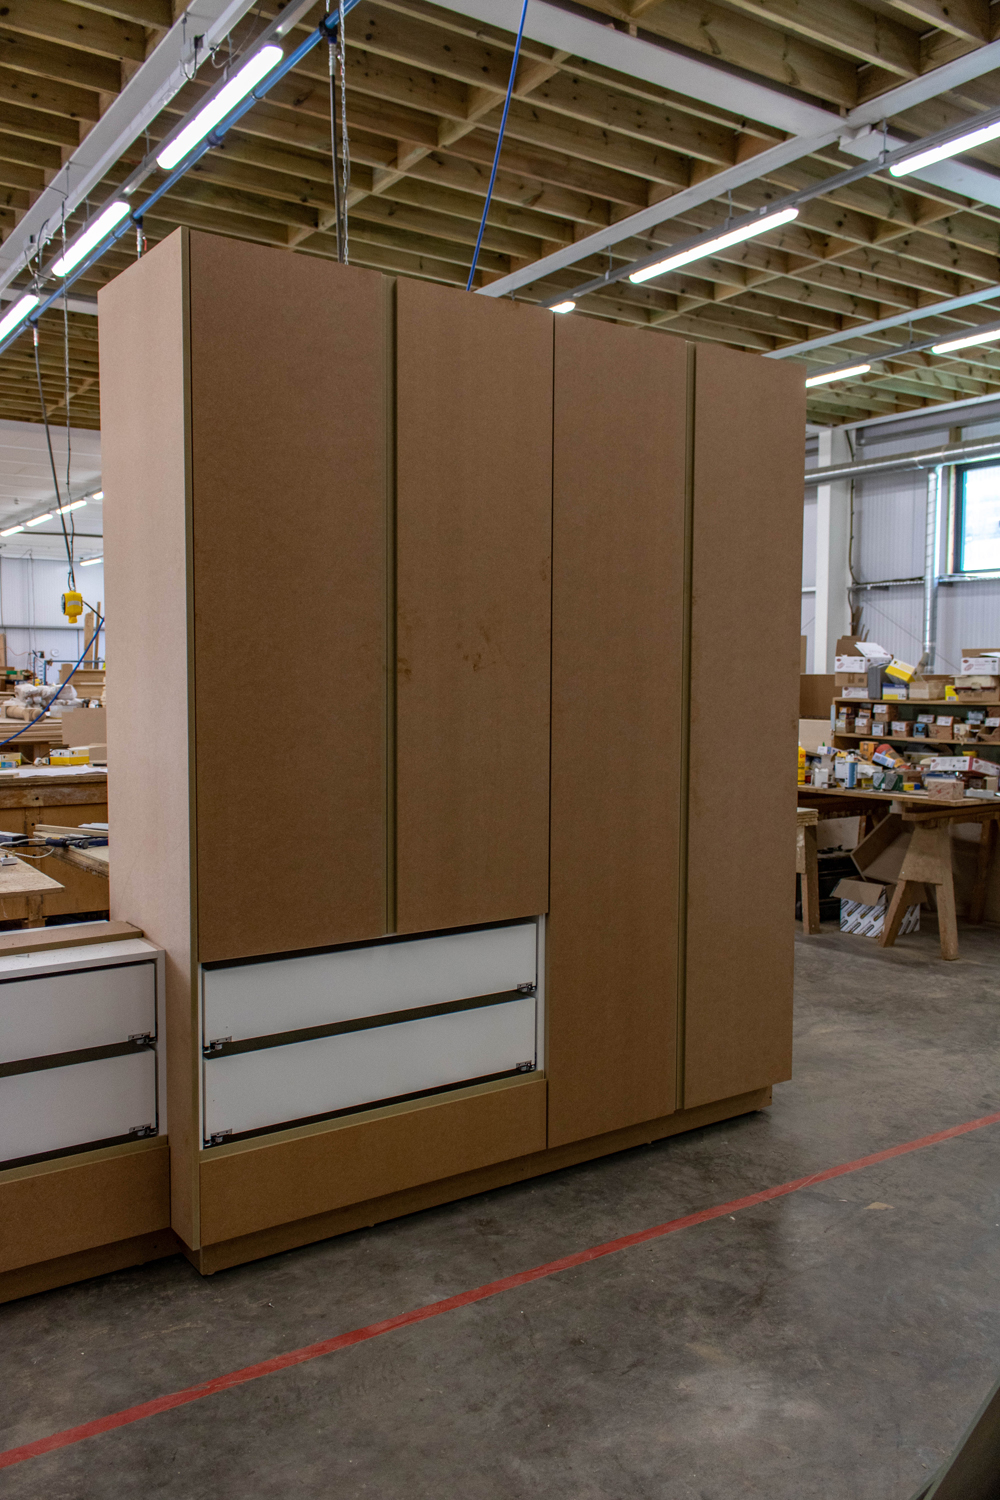 wood wardrobe with doors in workshop